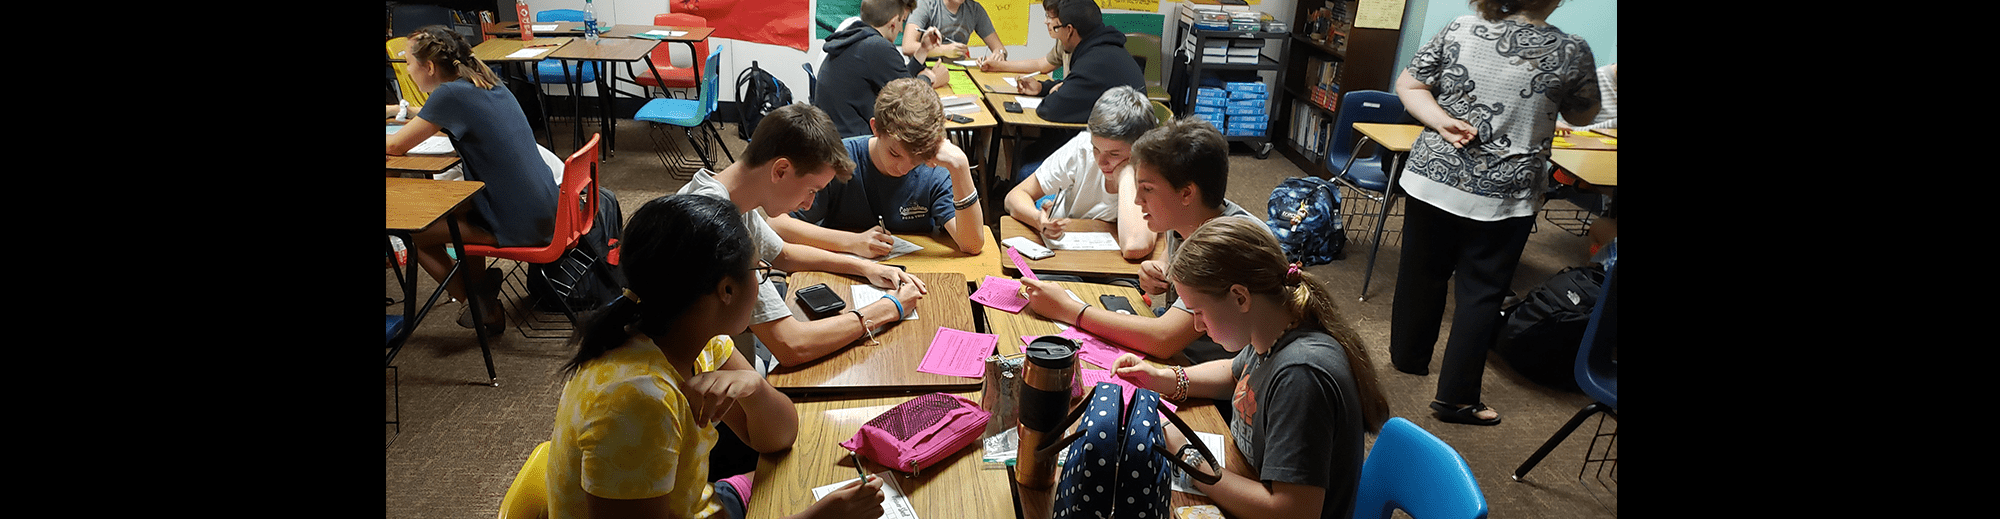 Students participate in an escape room activity together in a classroom